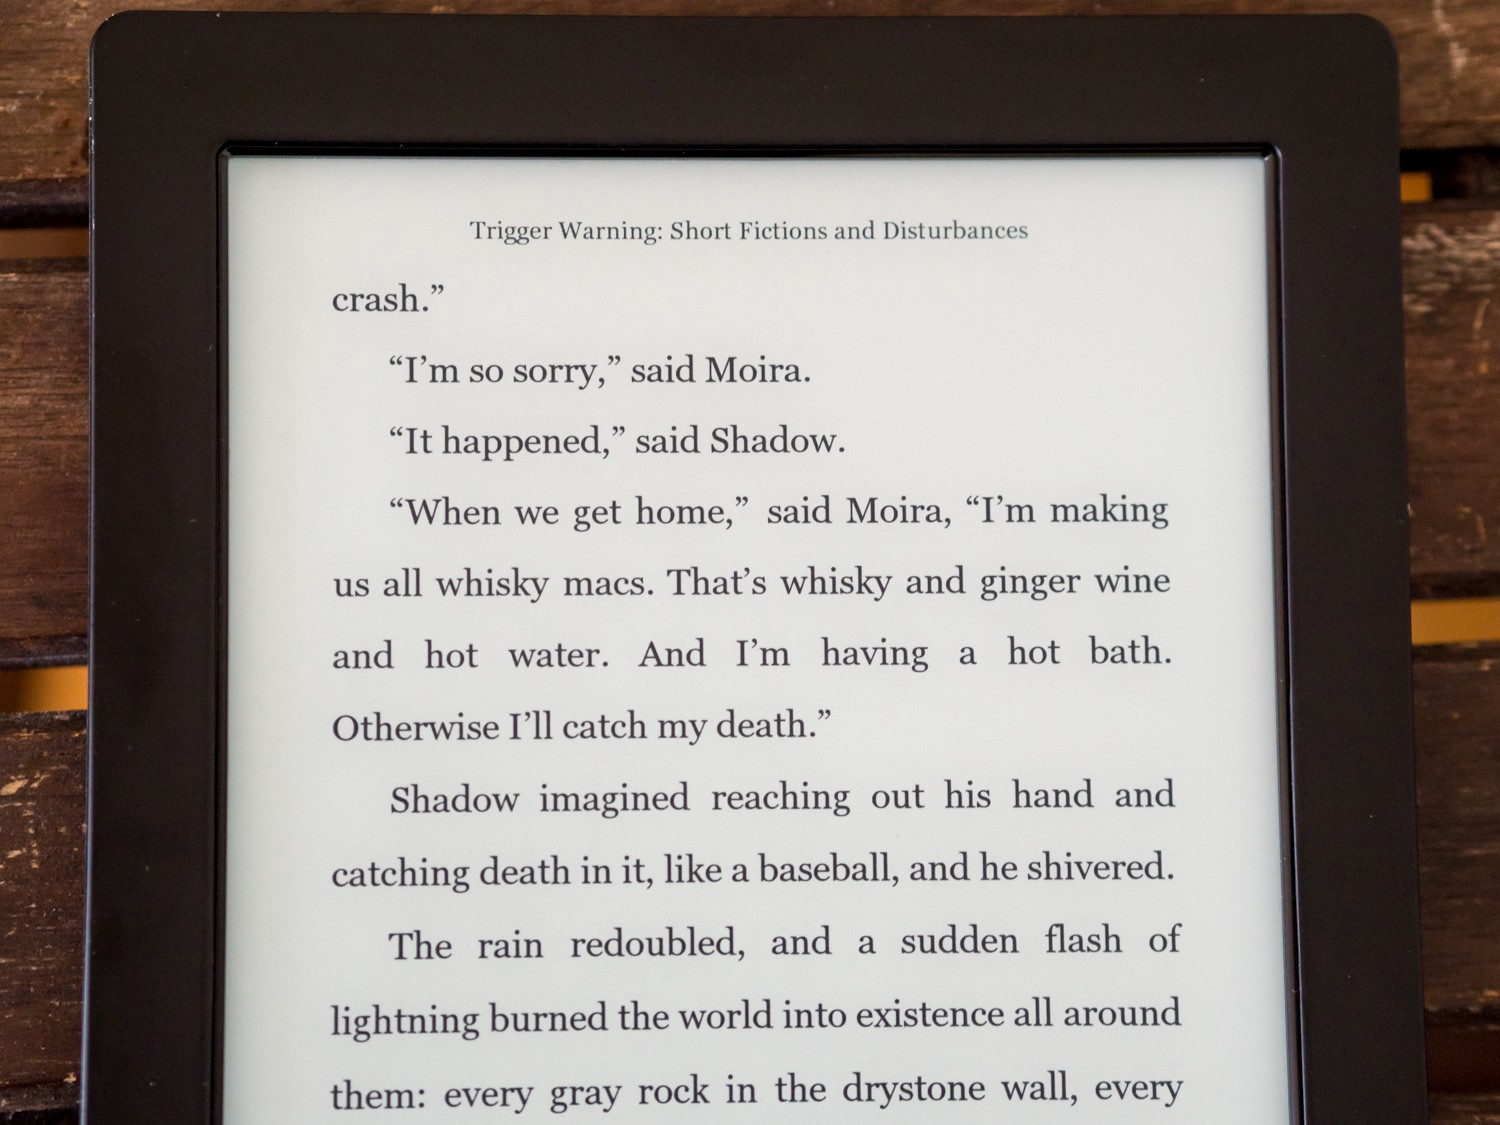 While The Kobo's Screen Offers It A Modest Advantage In Terms Of Pixel  Density Over The Paperwhite 2 (265ppi Vs 212ppi, But The Paperwhite 3,  Voyage,